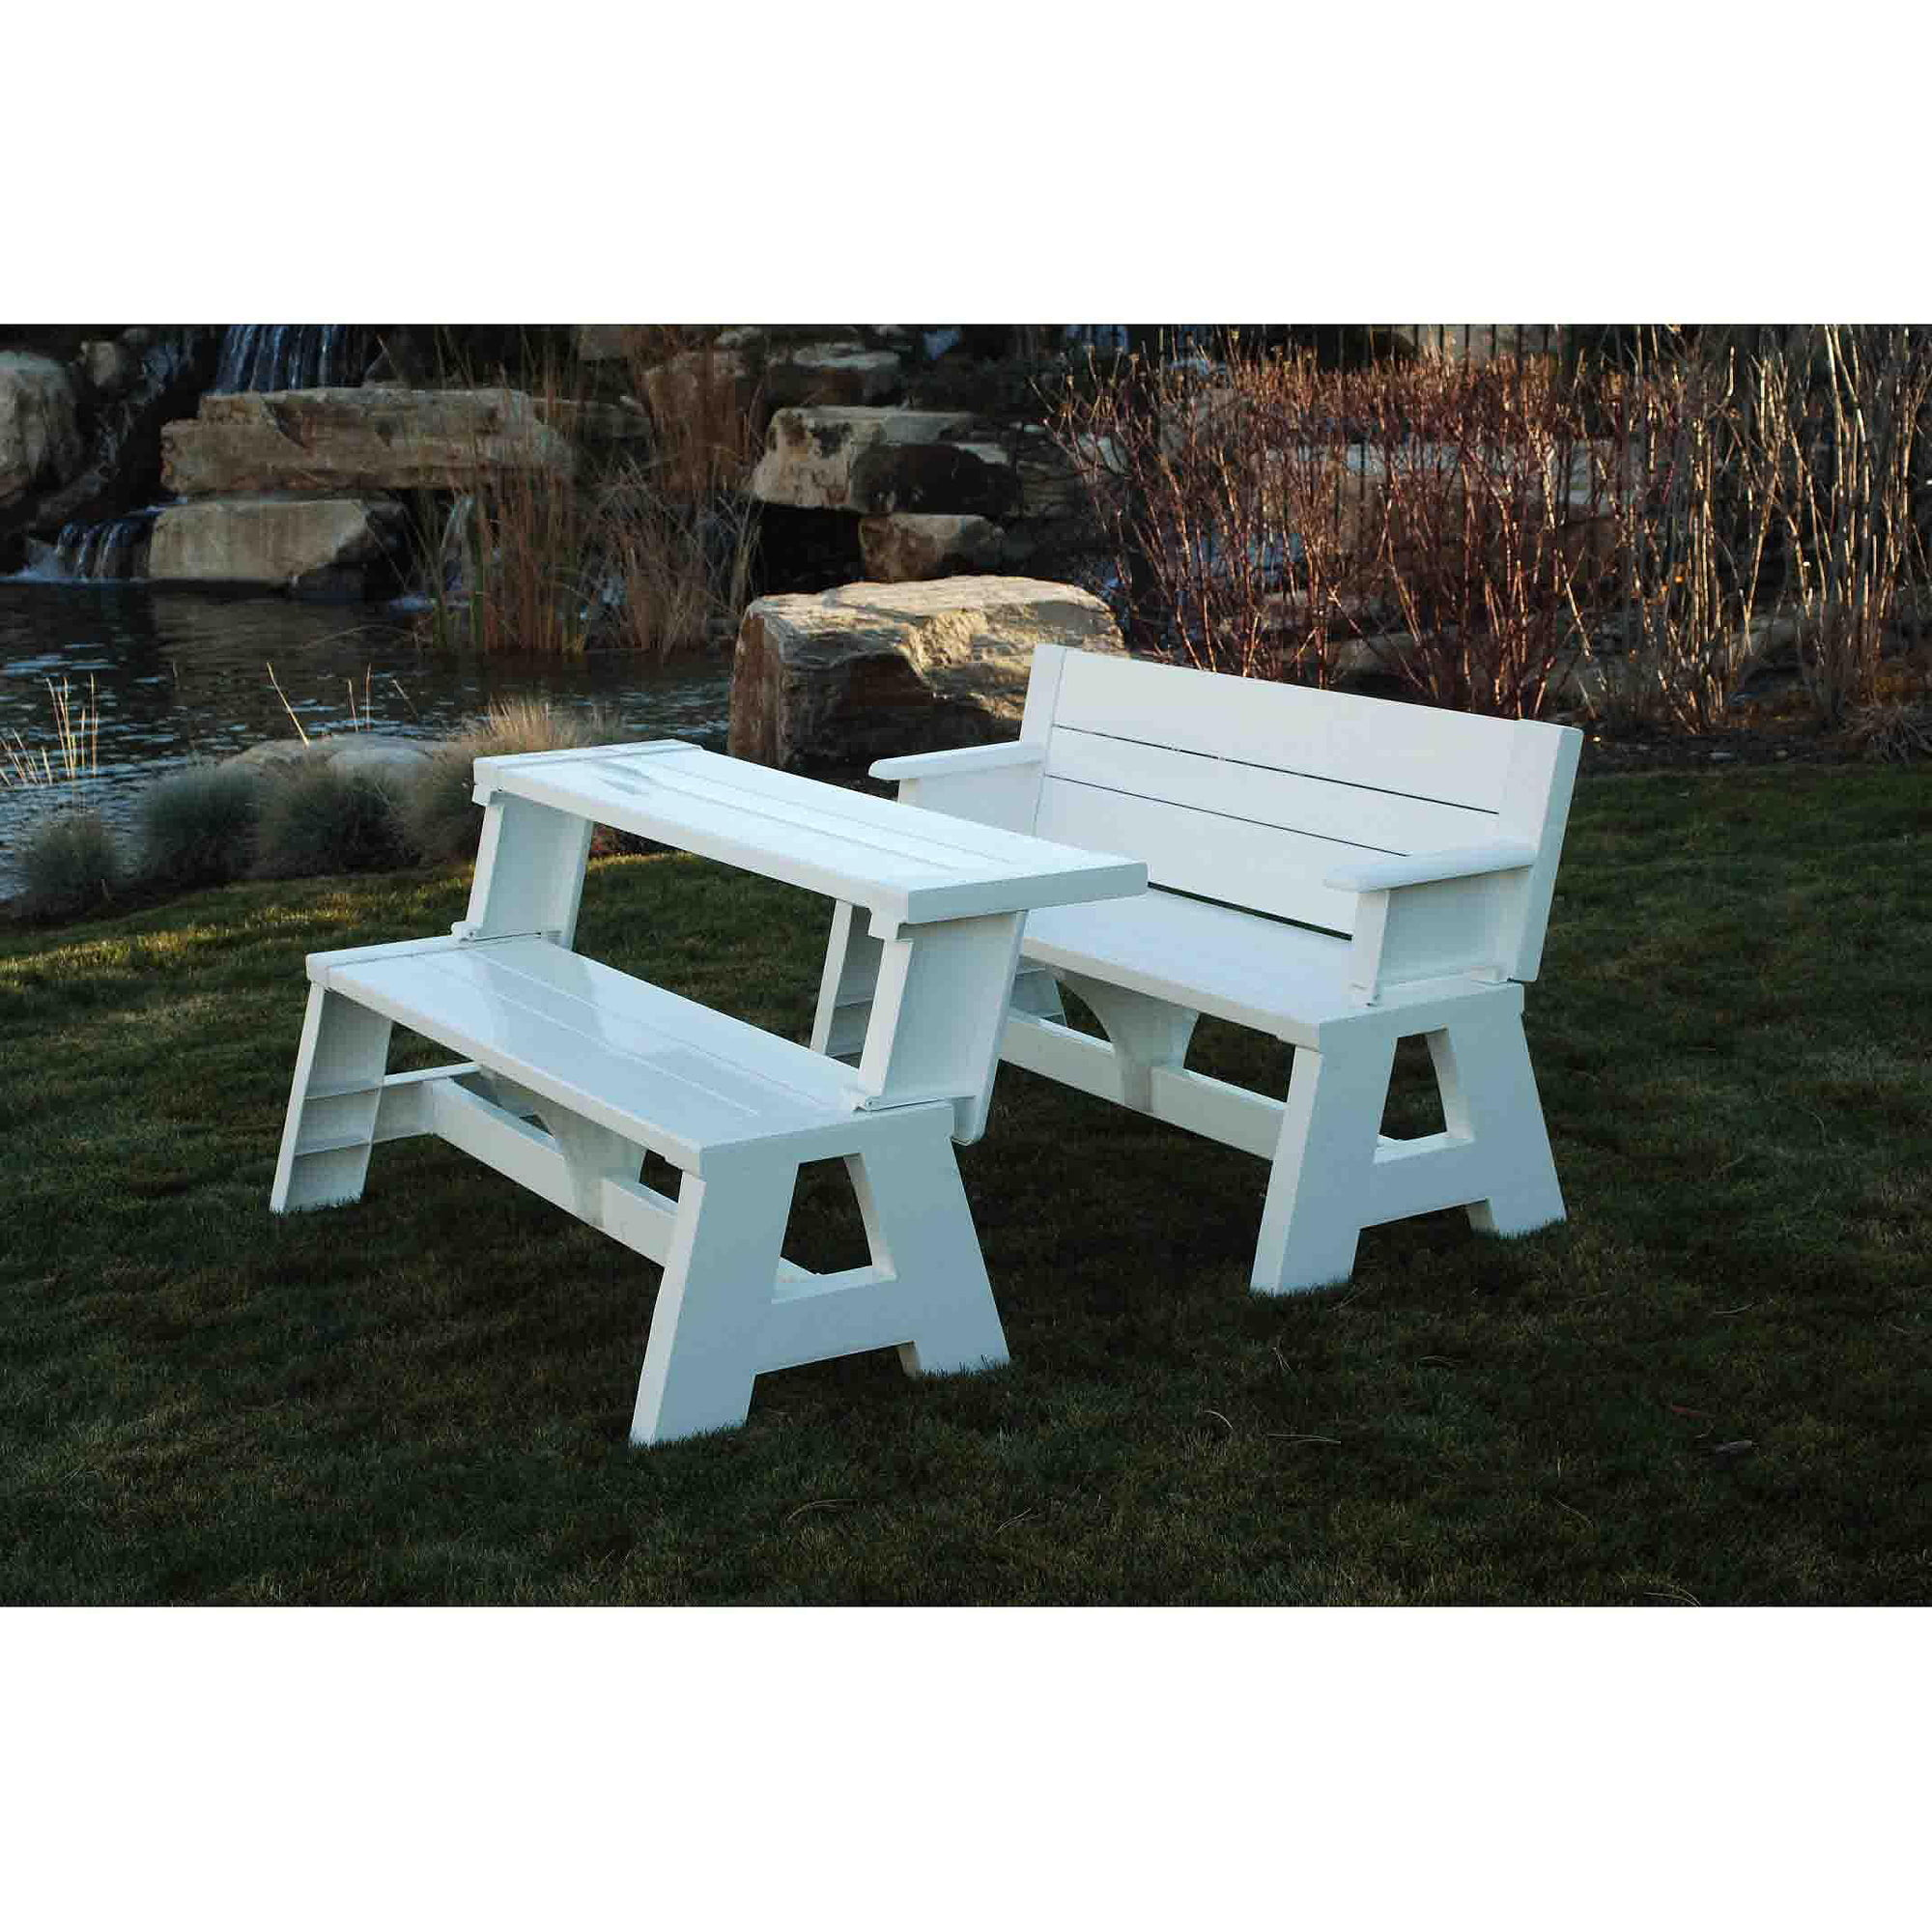 Convert-A-Bench Outdoor Bench and Picnic Table - Walmart.com